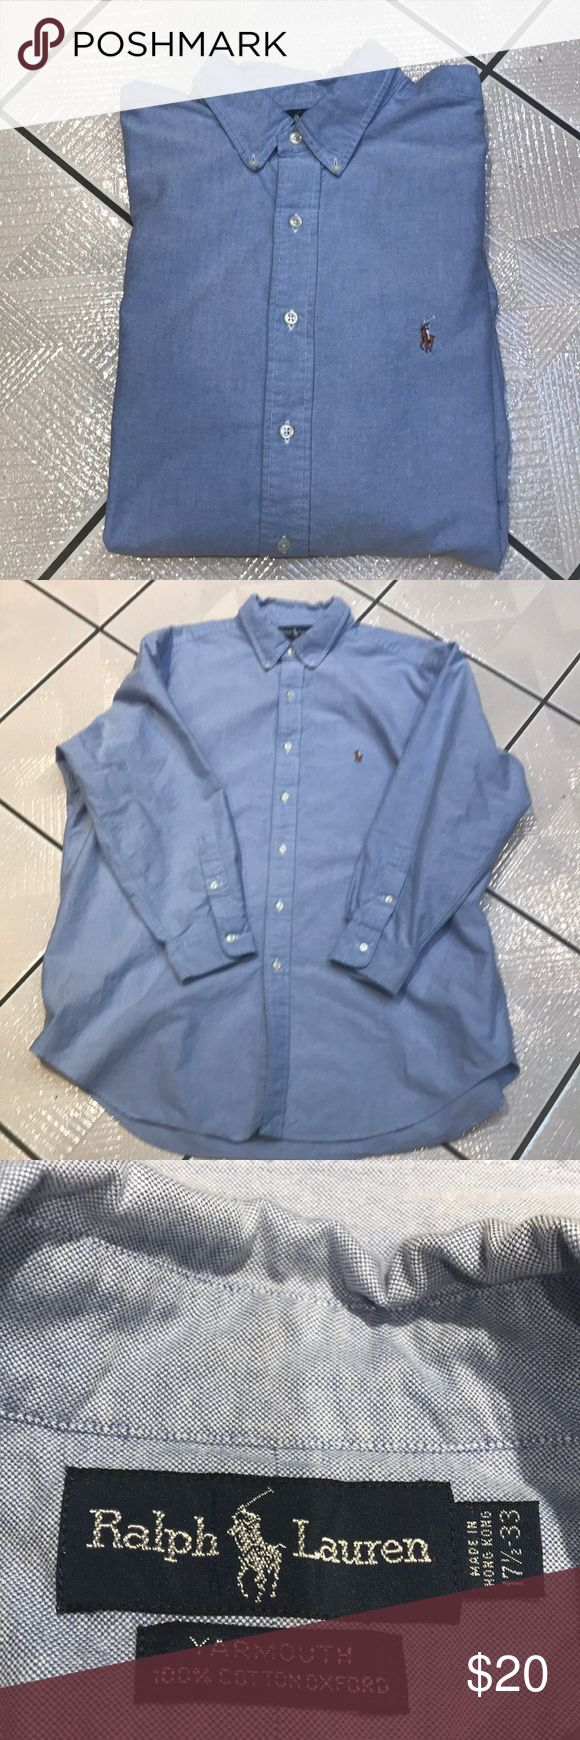 Men's Long sleeve Polo shirt! Light blue long sleeve shirt in excellent condition.  17-1/2/33 Shirts